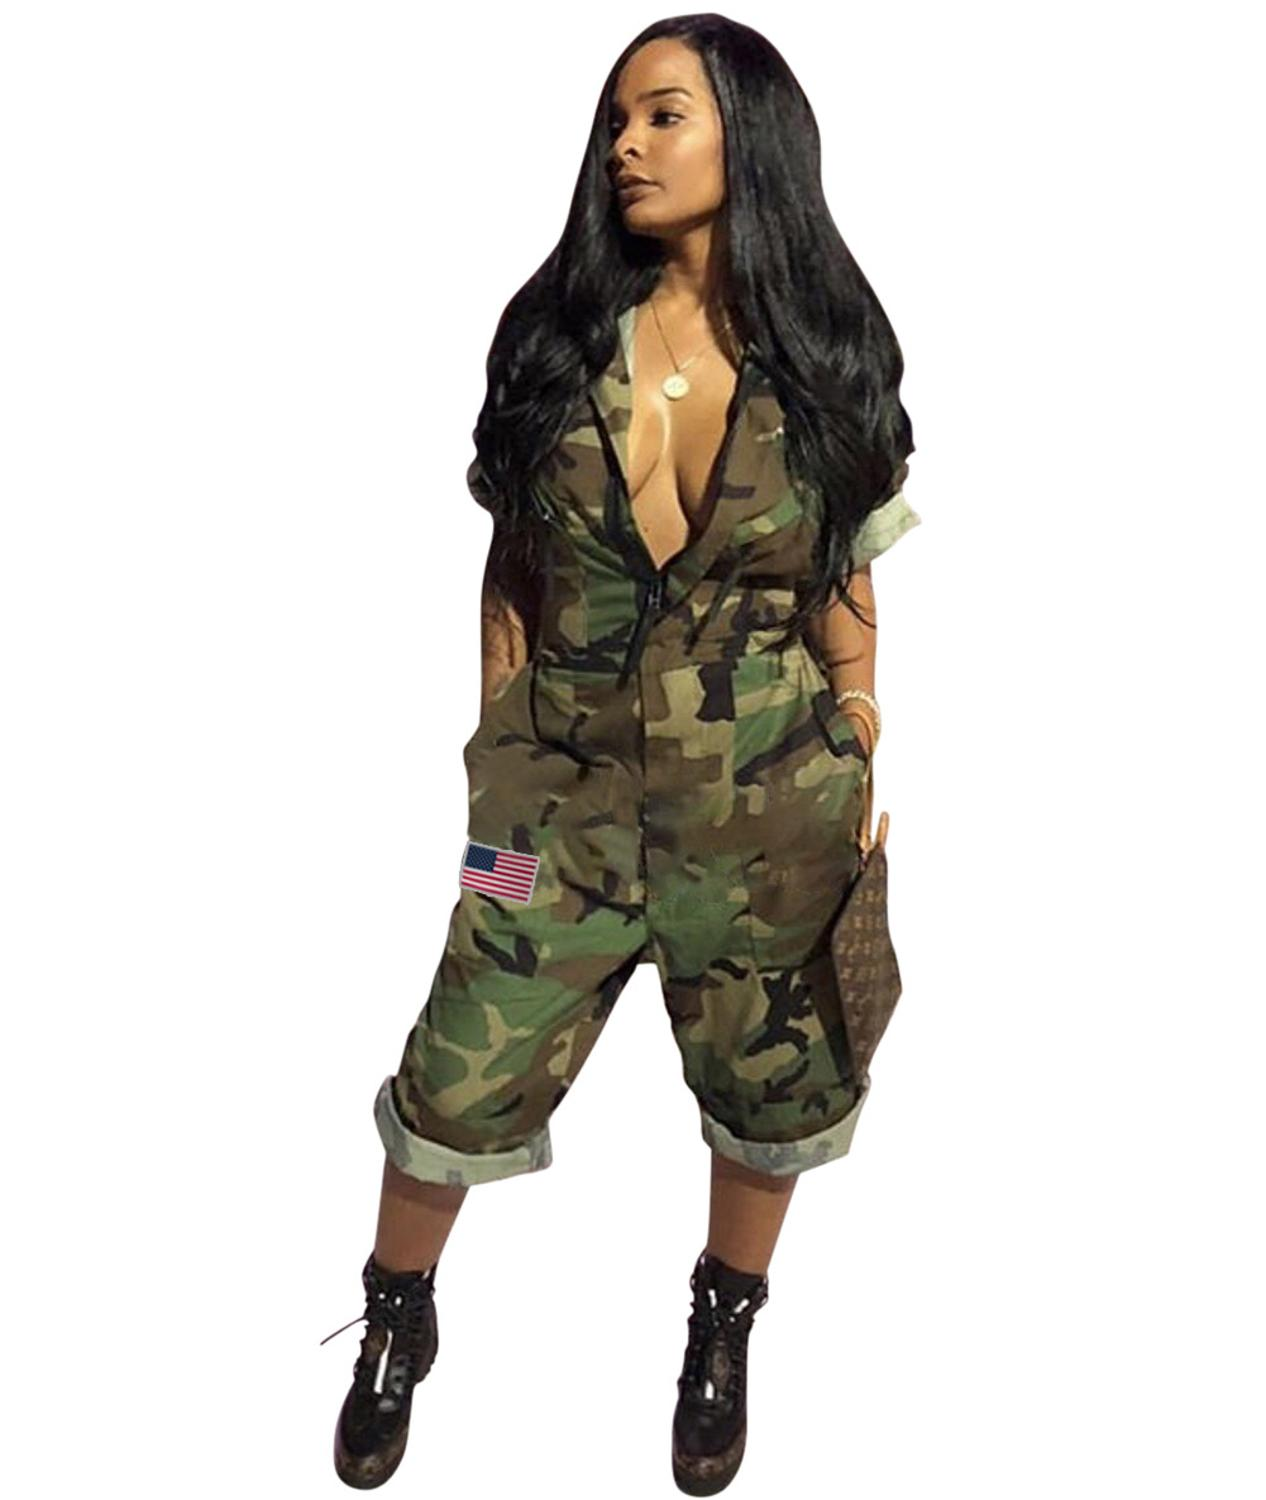 2020 New Famous Casual Women Jumpsuit Camouflage Turn-down Collar Short Sleeve Calf-Length Romper image